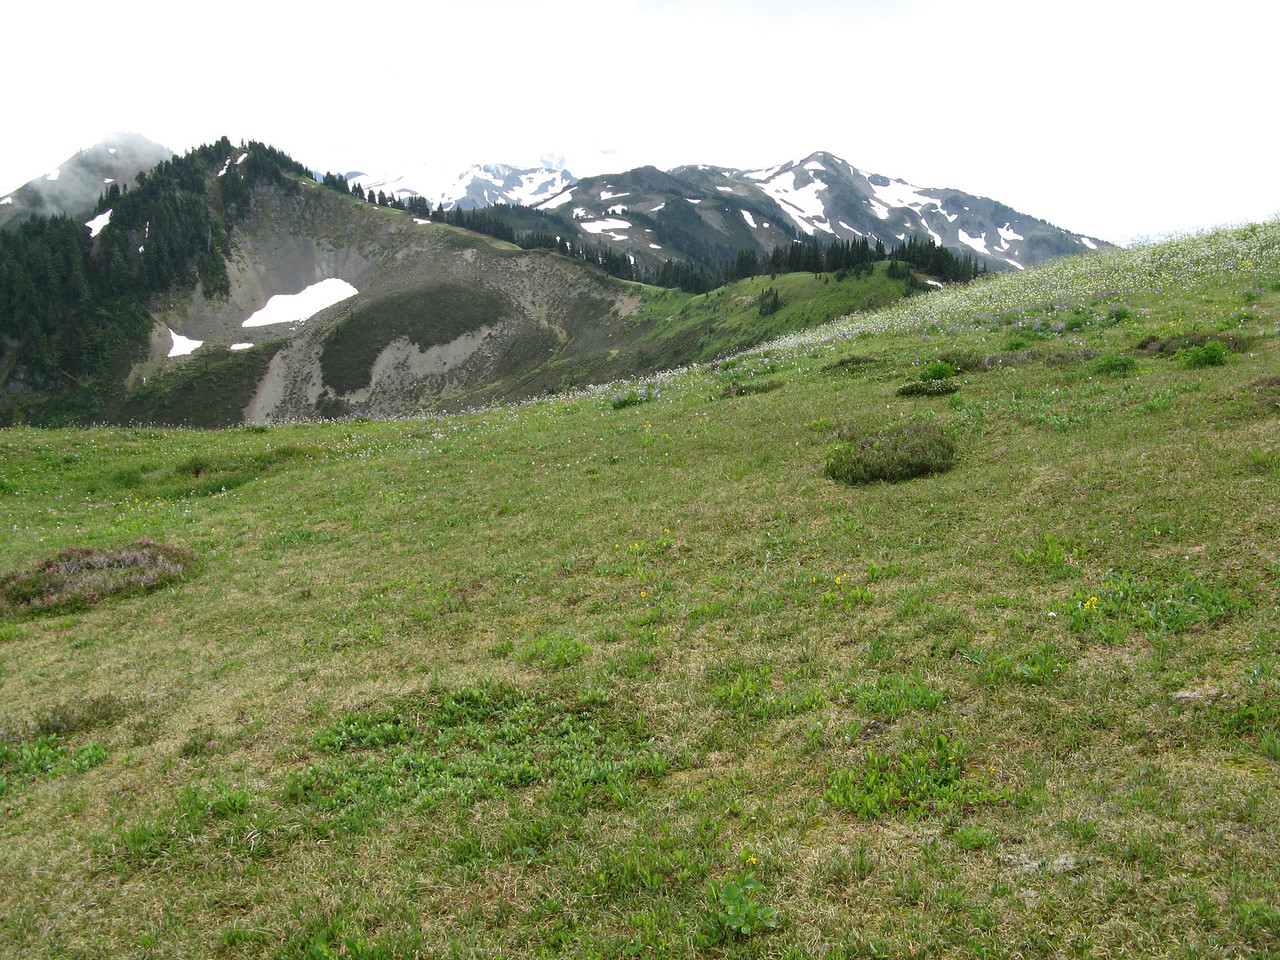 The meadow at the ridge top was enchanting.